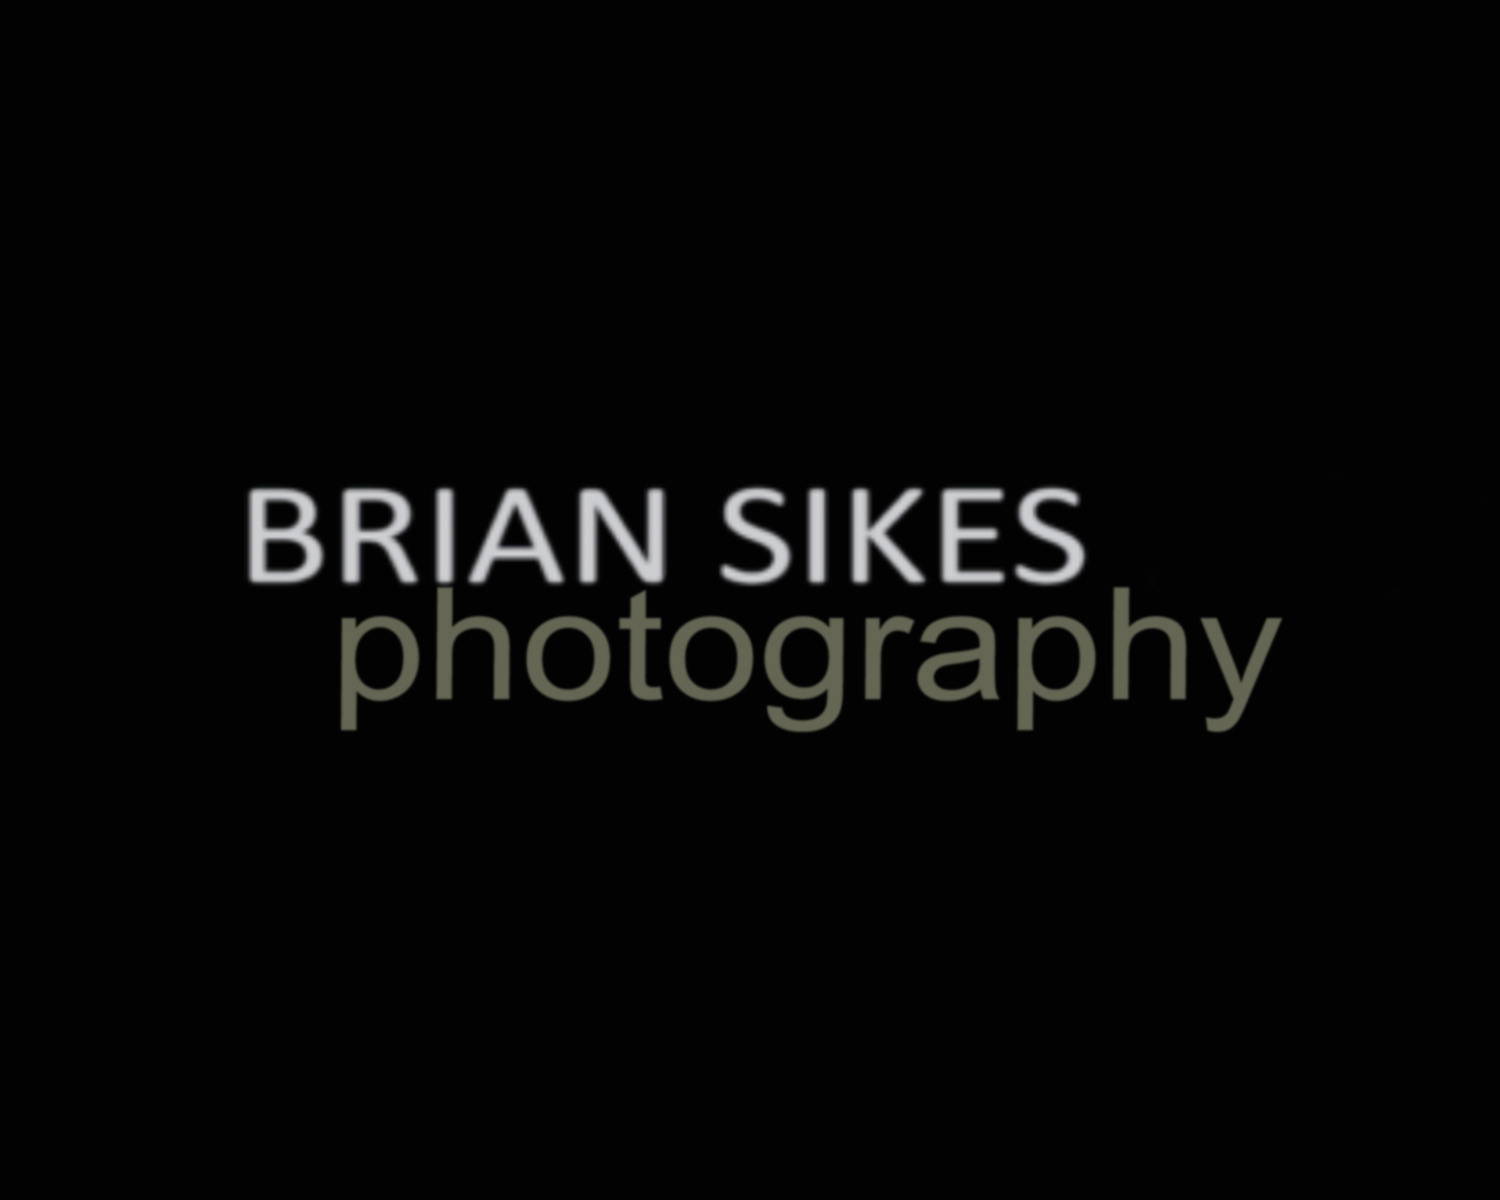 Brian Sikes